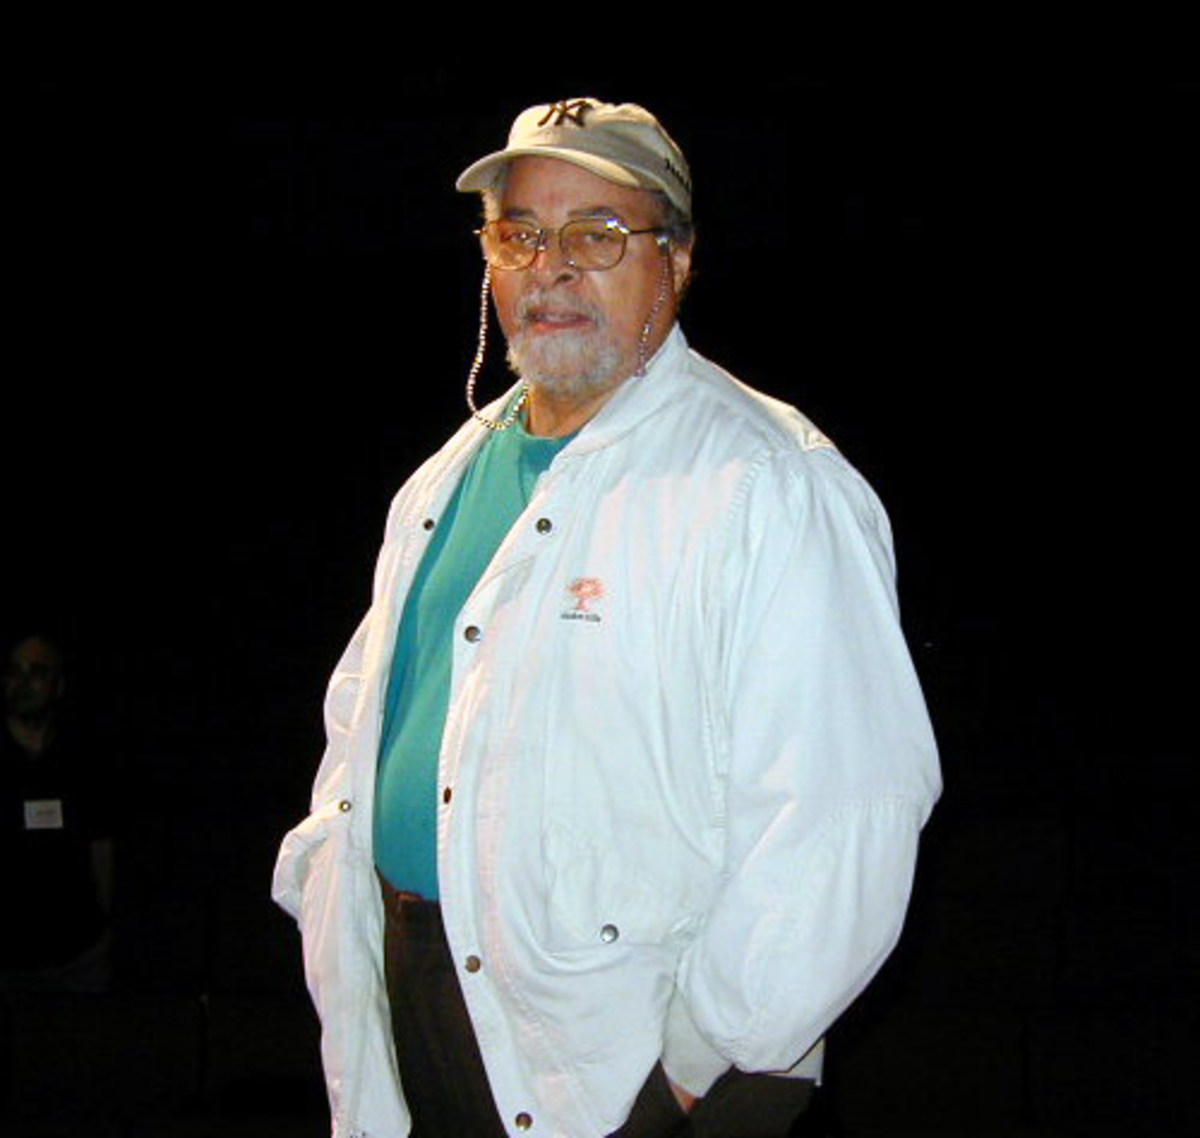 Jimmy Cobb, Jazz Drummer, born in Washington D.C. on January 20, 1929, still kicking it internationally and in New York